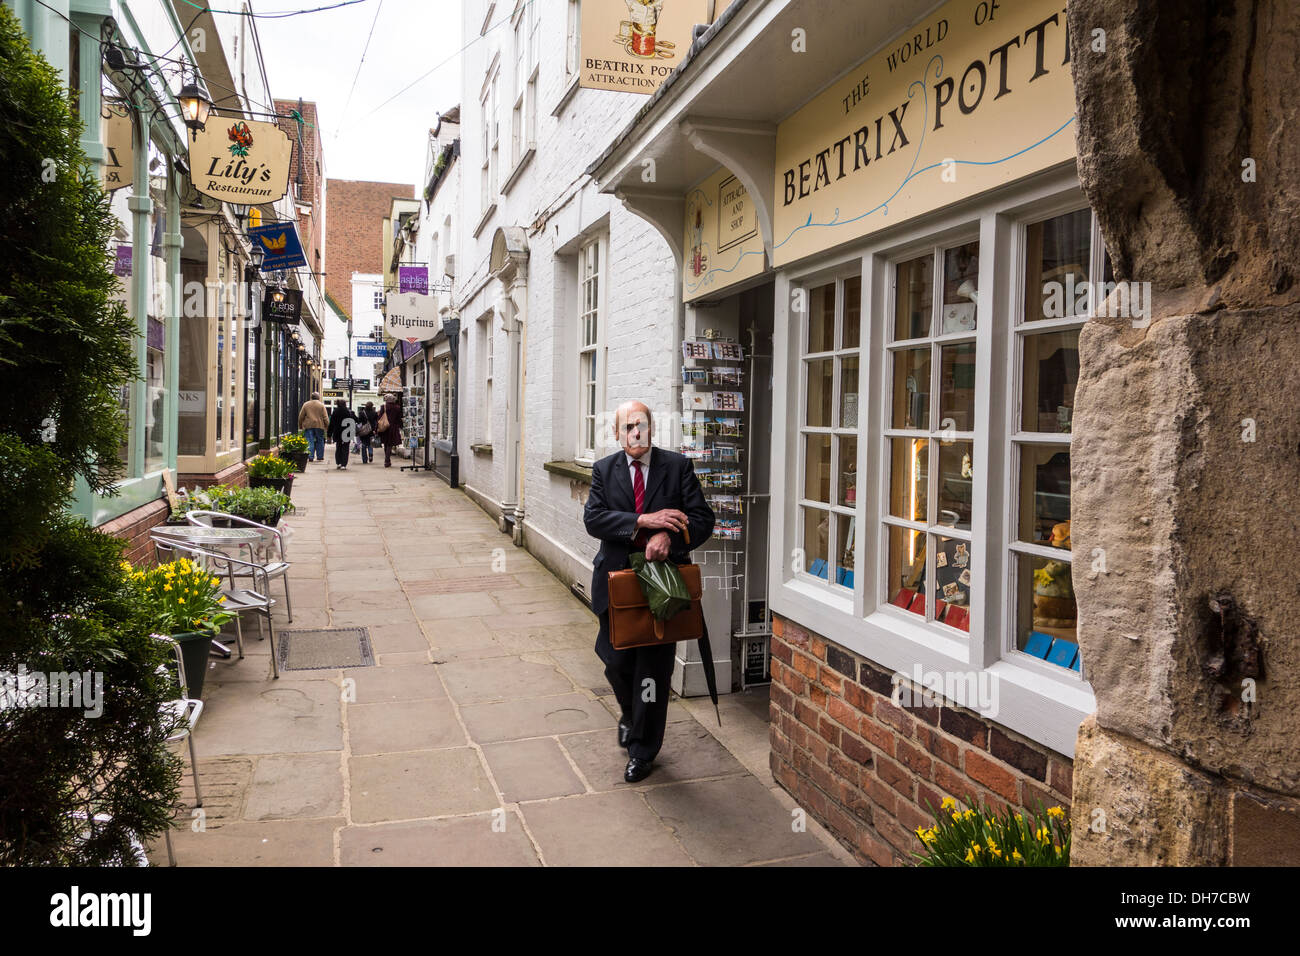 An elderly English gentleman coming out of Beatrix Potter shop in College Court, Gloucester, Gloucestershire, UK - Stock Image